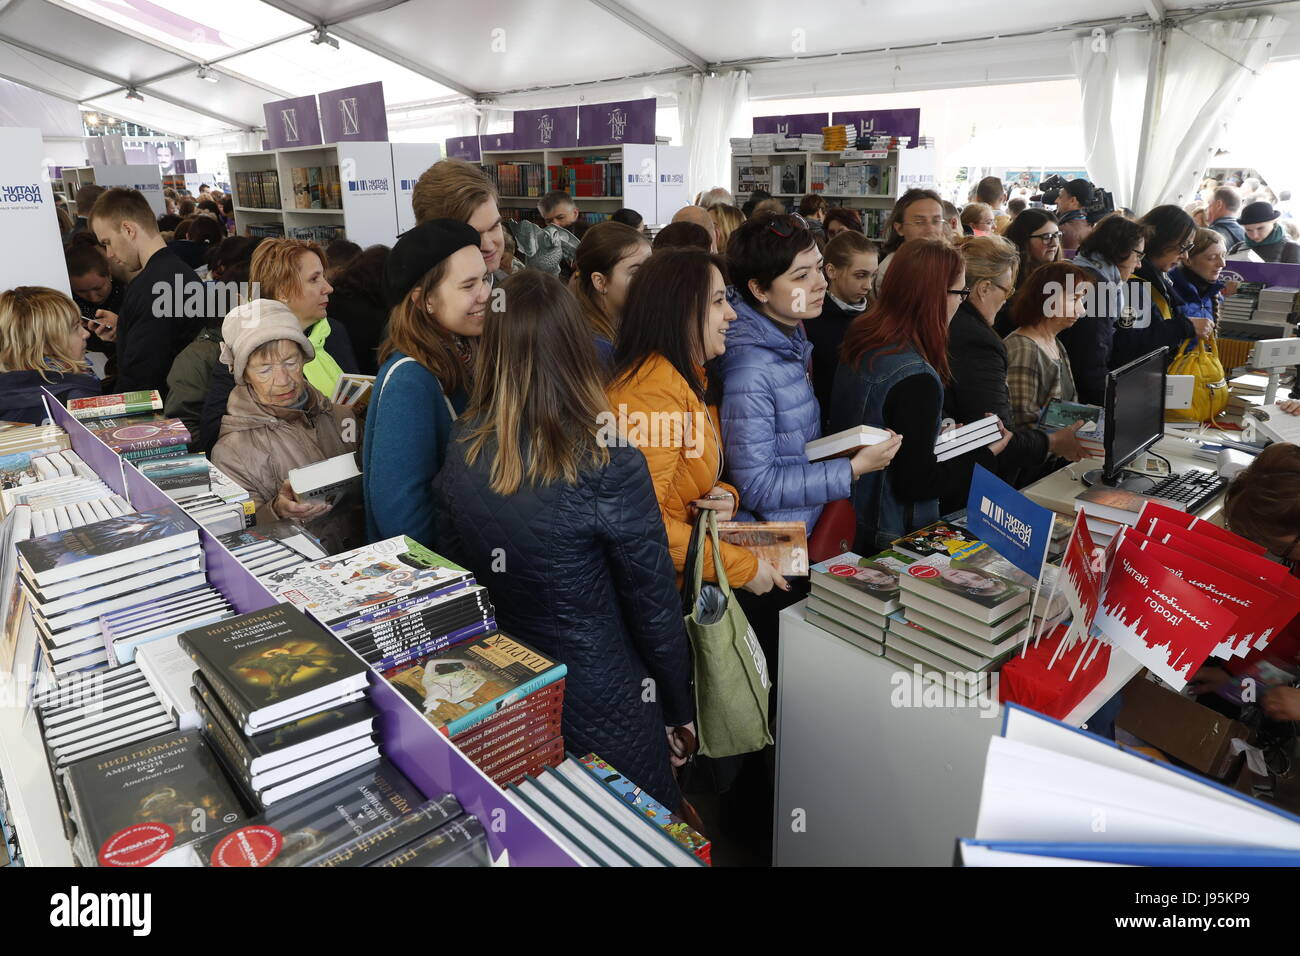 People Buying Books Experience Of Wiring Diagram Samsung Dv520aep Xaa Dryer Moscow Russia June 4 2017 At The Red Rh Alamy Com Patrick